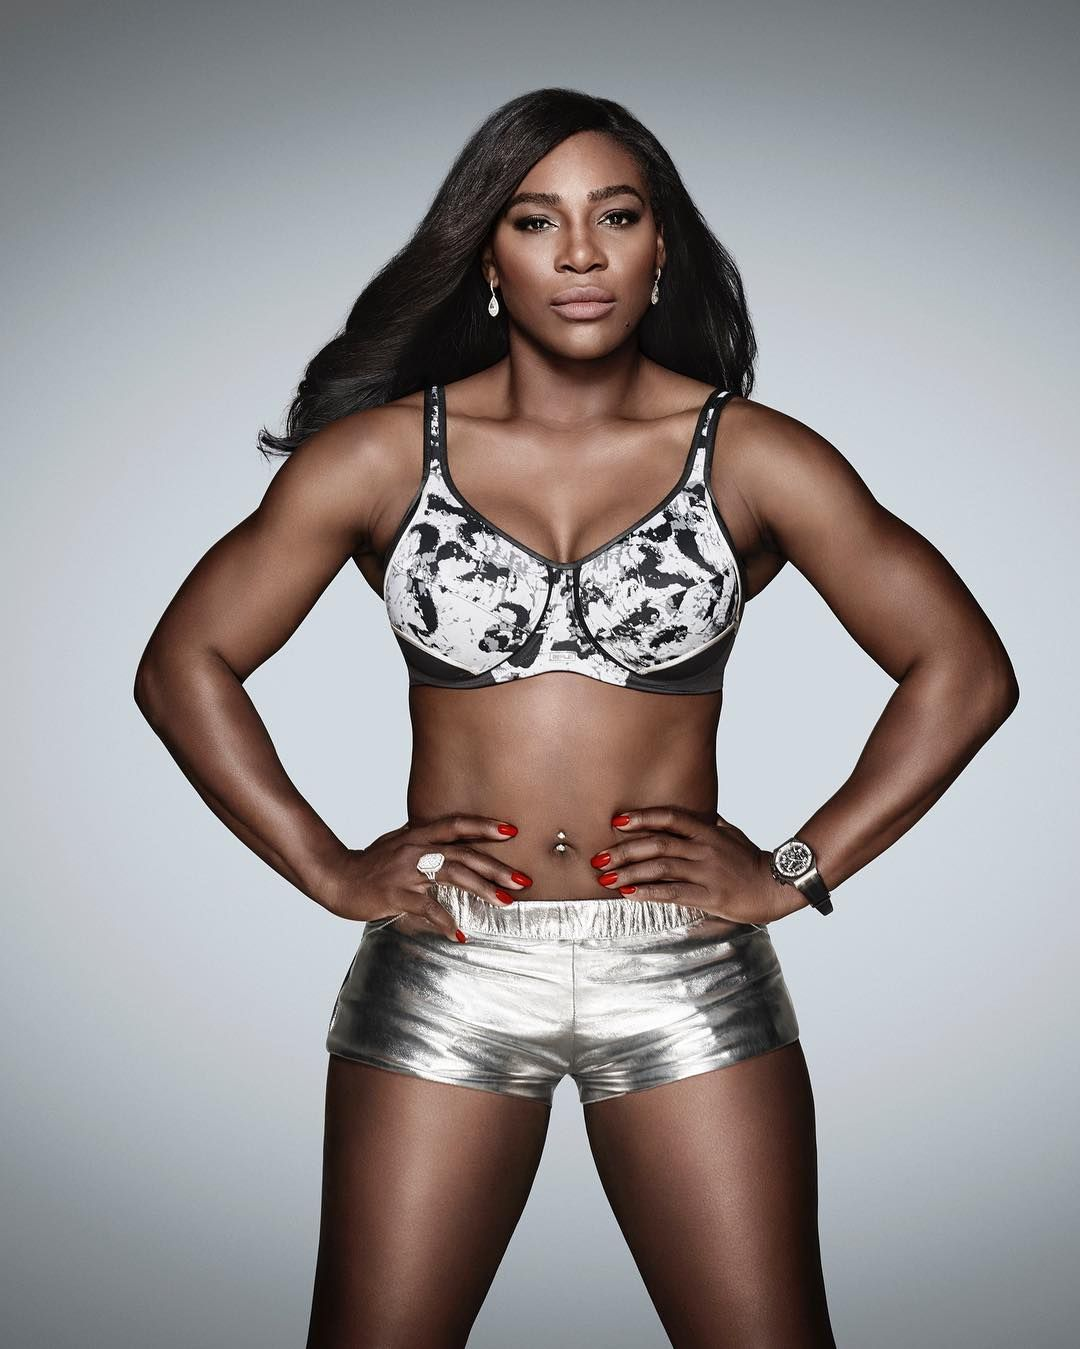 Serena williams flaunts her sexy abs and toned body in new berlei serena williams nvjuhfo Image collections